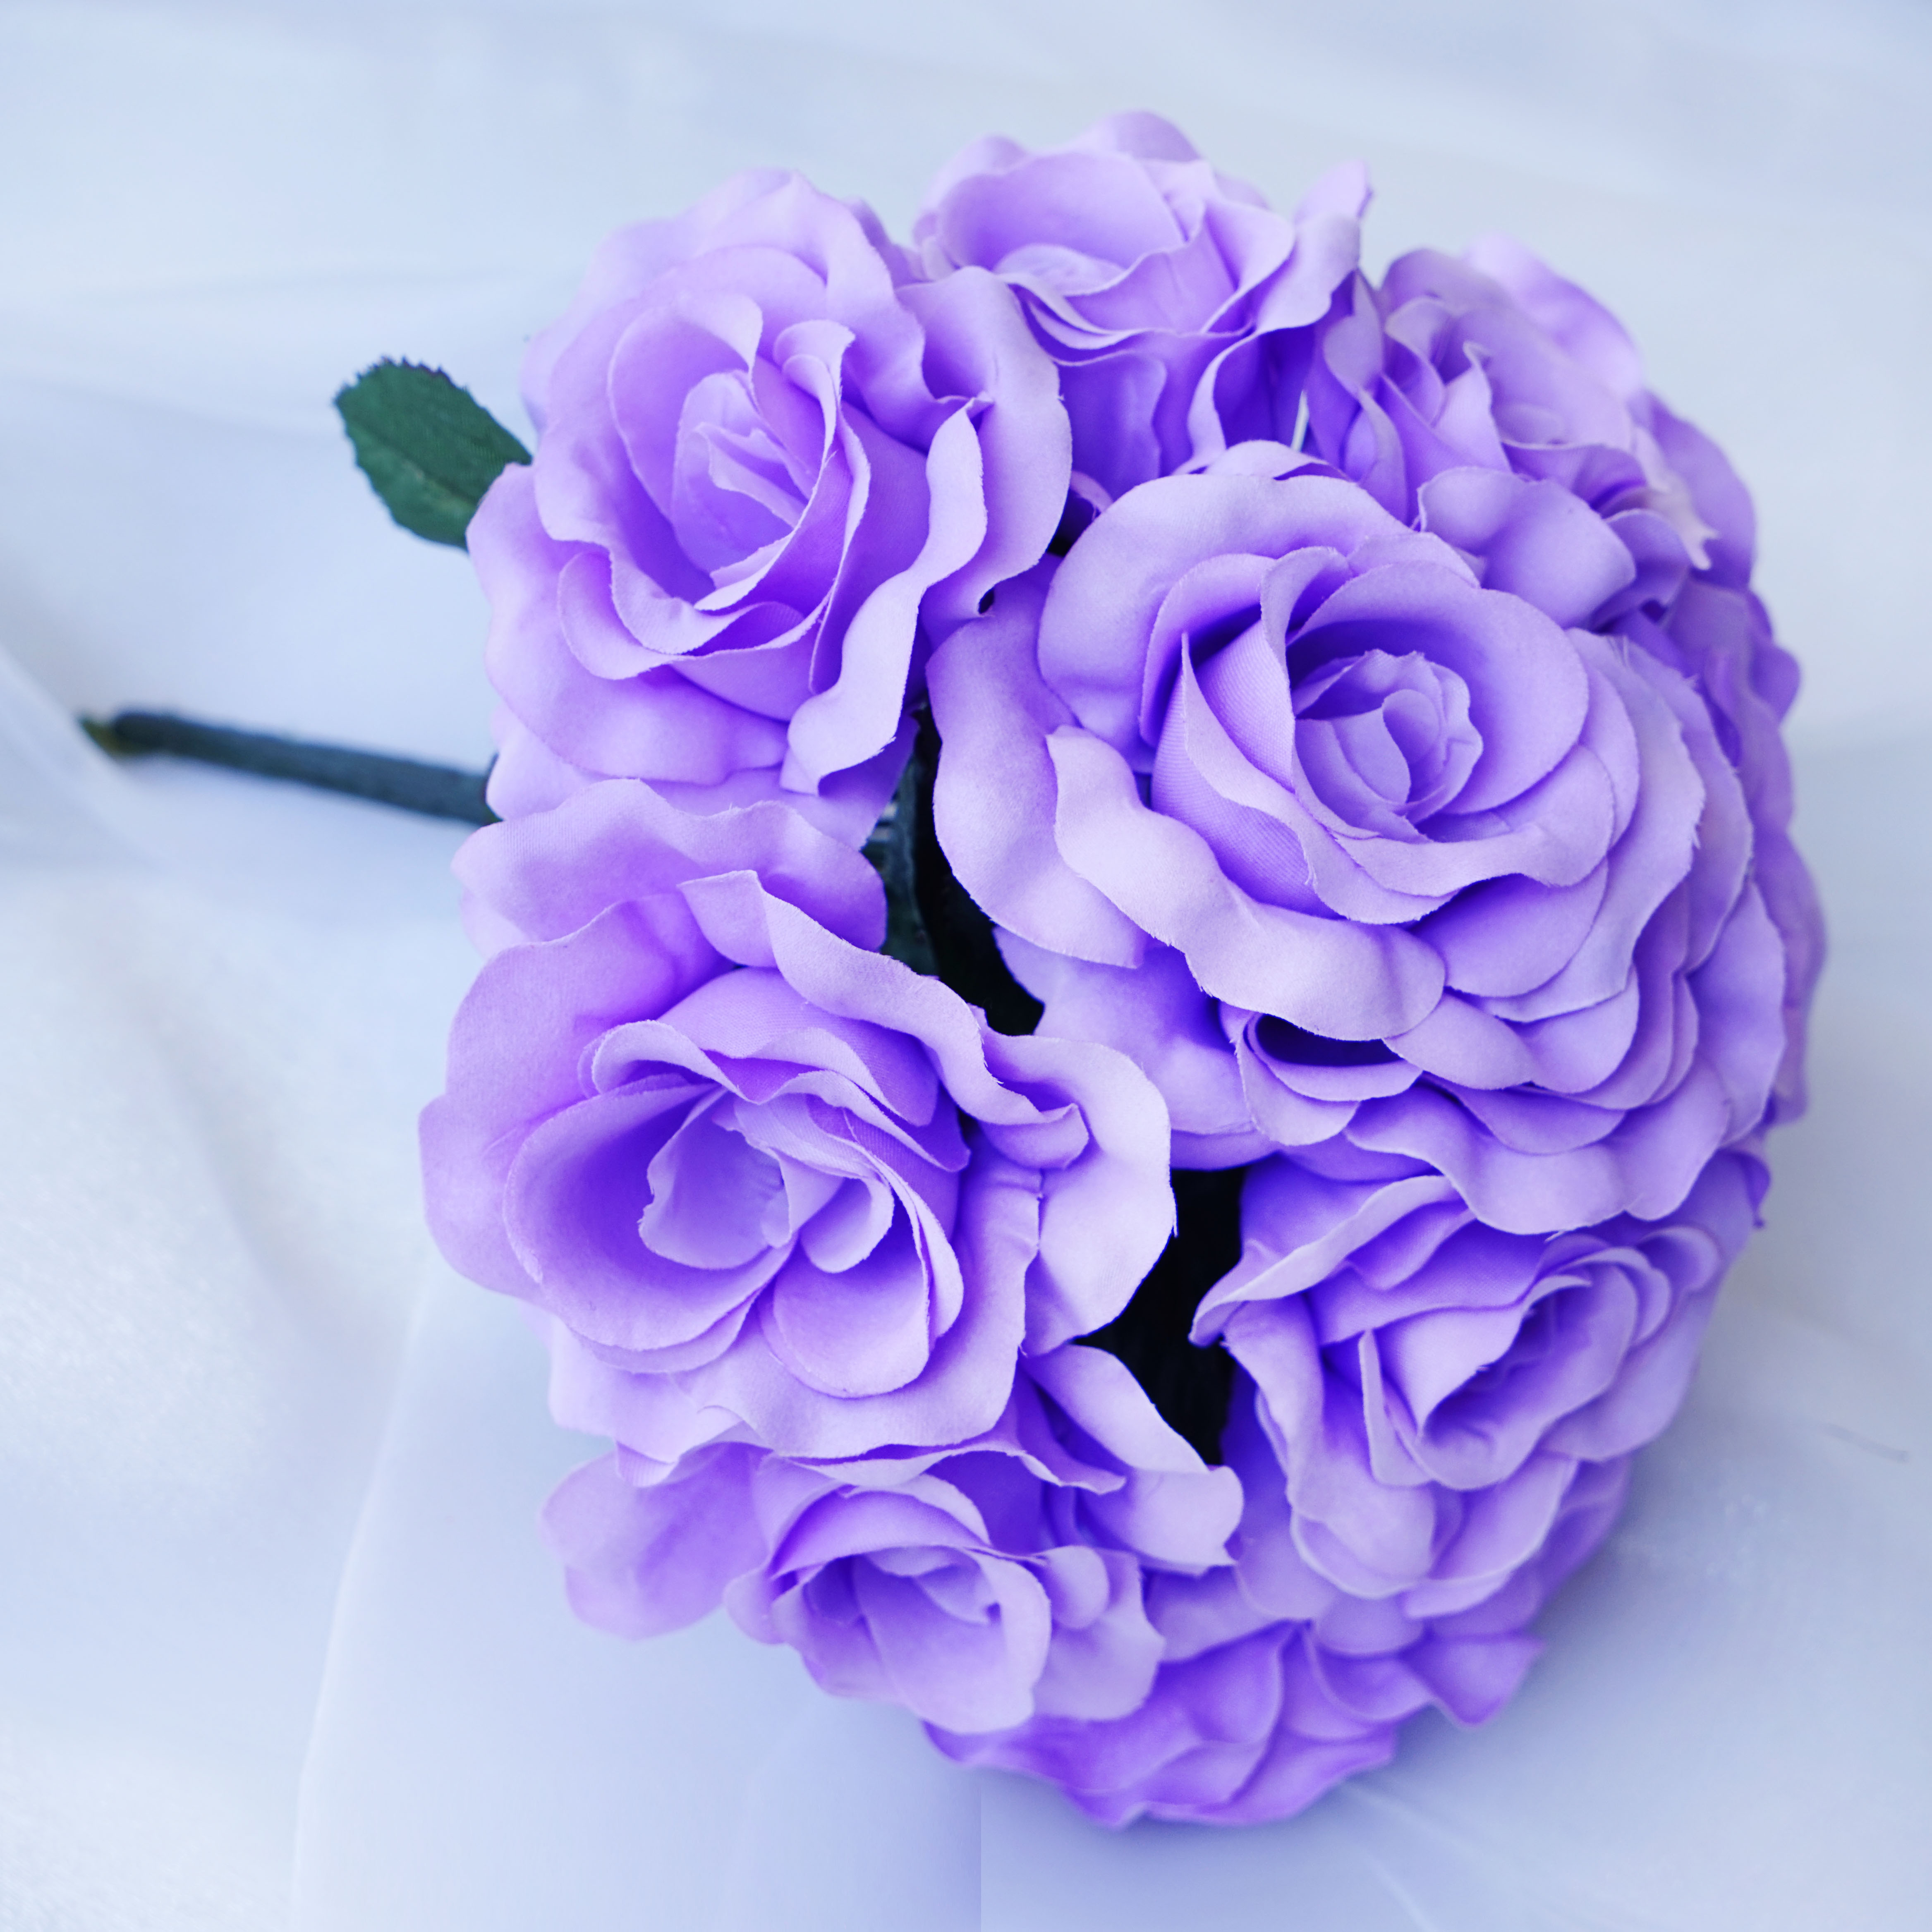 Efavormart 4 pcs Real Looking Premium Velvet Artificial Roses Wedding Bouquets Bridal Flowers for Wedding Party and Church